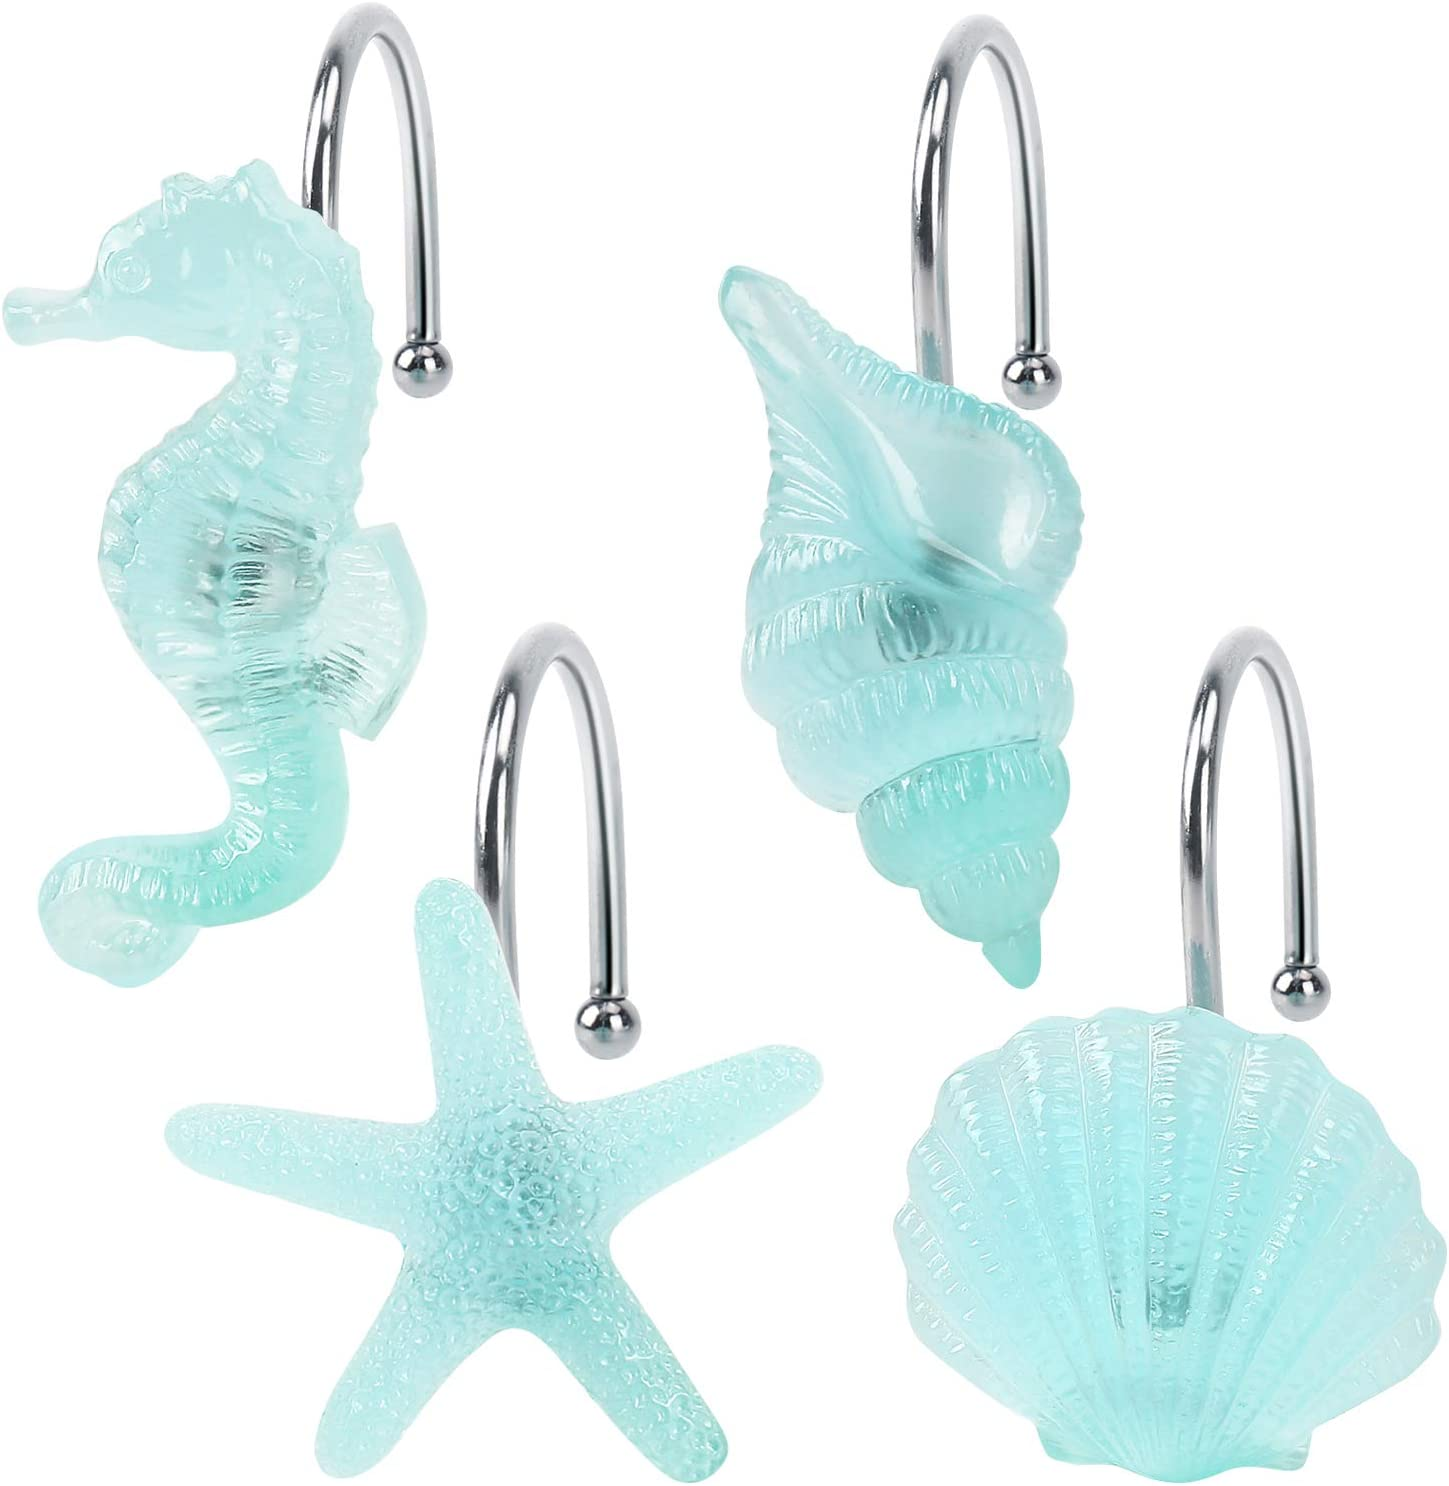 KAWANA Shower Curtain Hooks, Set of 12 Glow in The Dark Starfish, Seashell, Conch, and Seahorse Decorative with Rust Proof Stainless Steel Hook, Blue Ocean Beach Theme Bathroom Décor